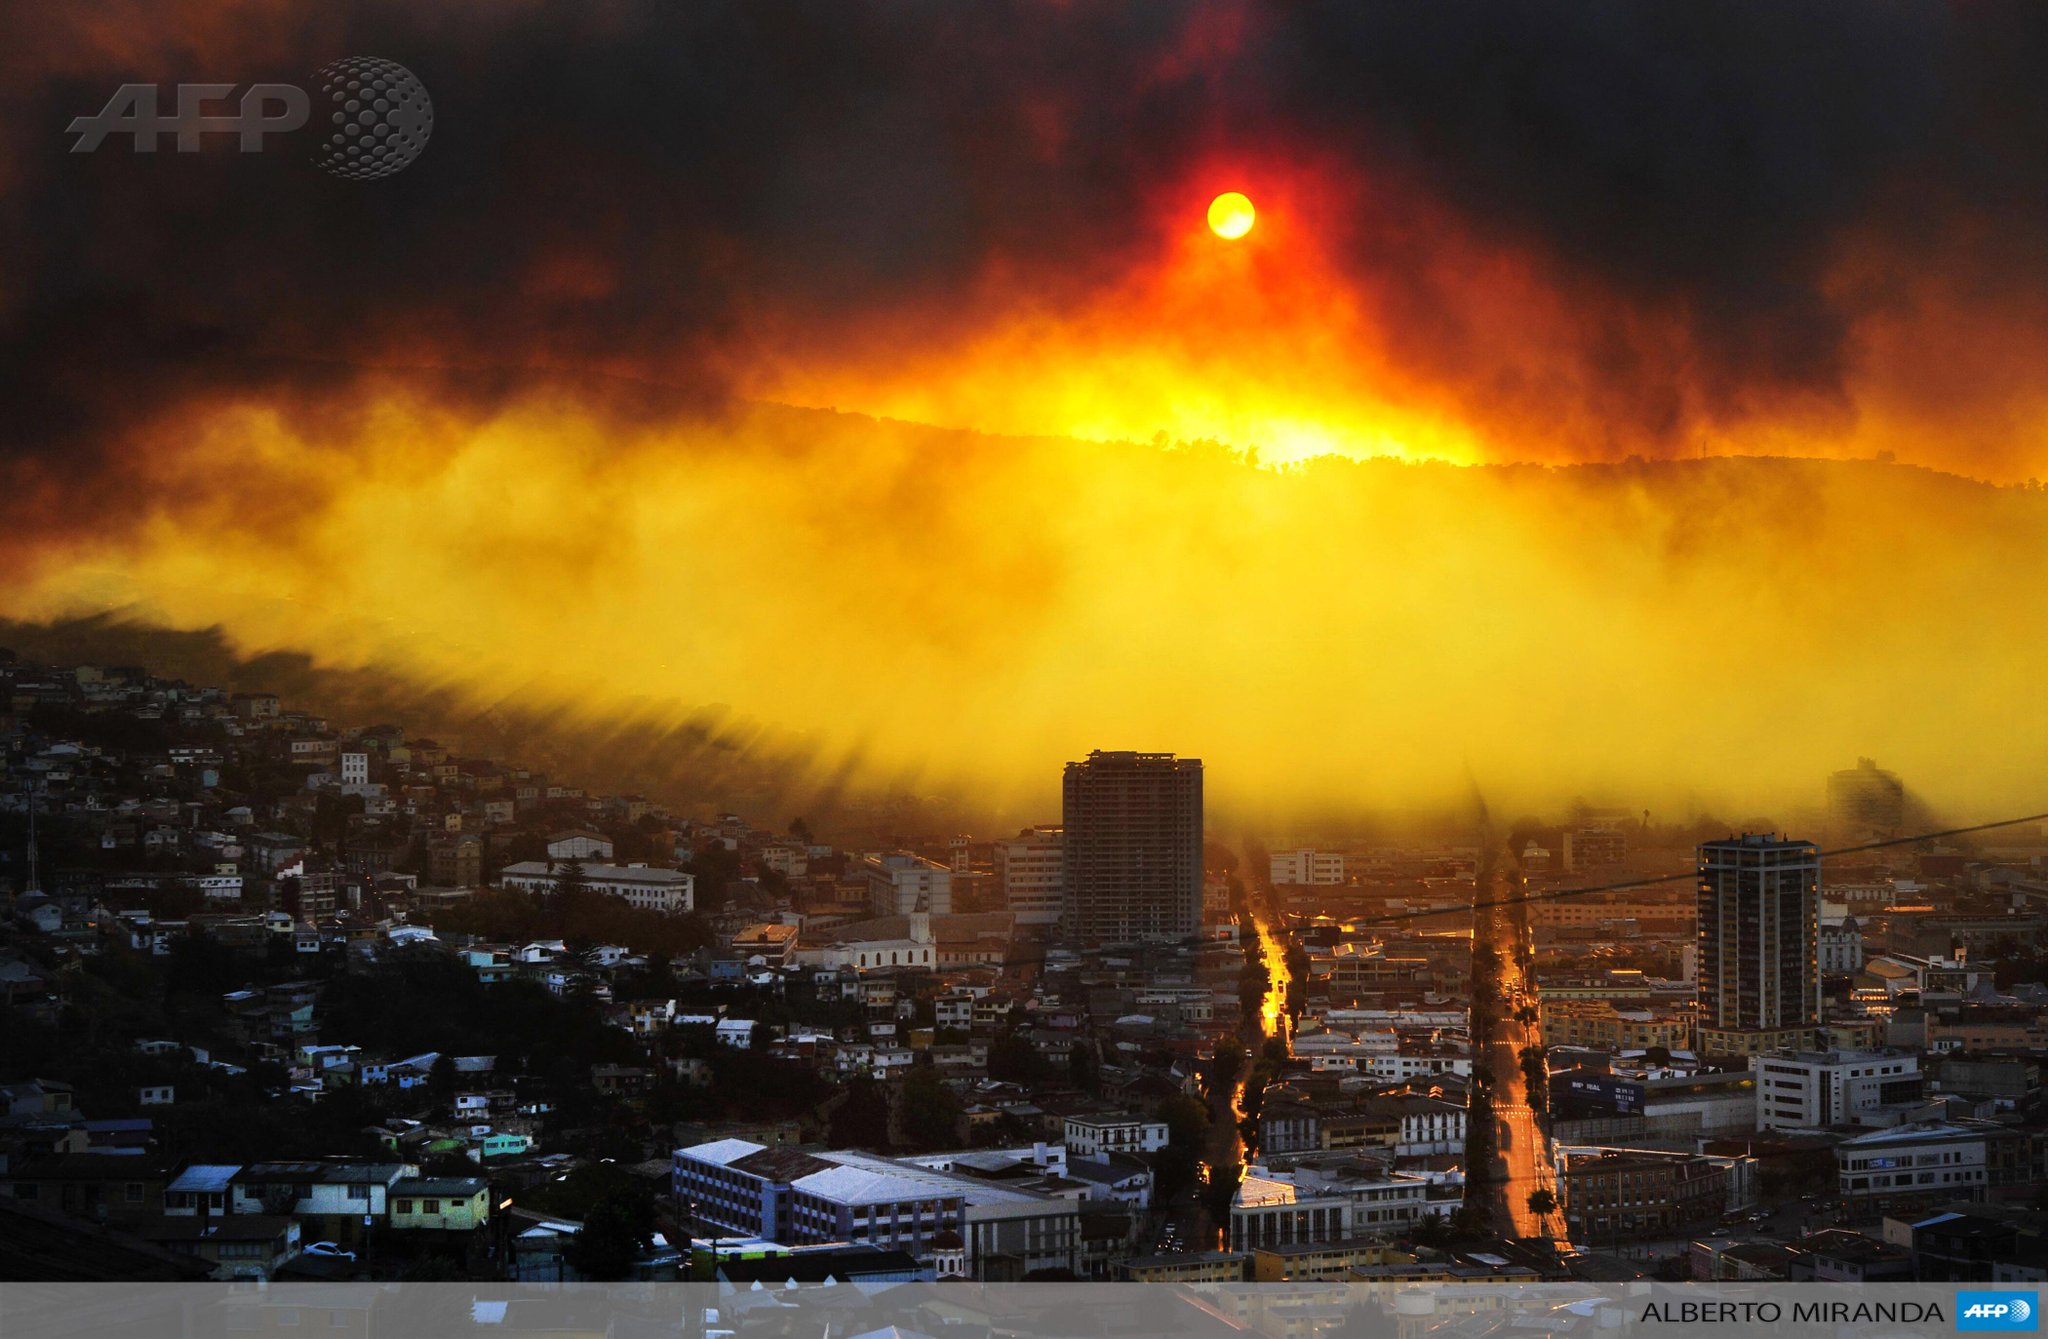 #PHOTO: a fire in the Chilean city of Valparaiso has destroyed 500 homes and forced the evacuation of 3,000 people http://t.co/DAOfhX8IwH